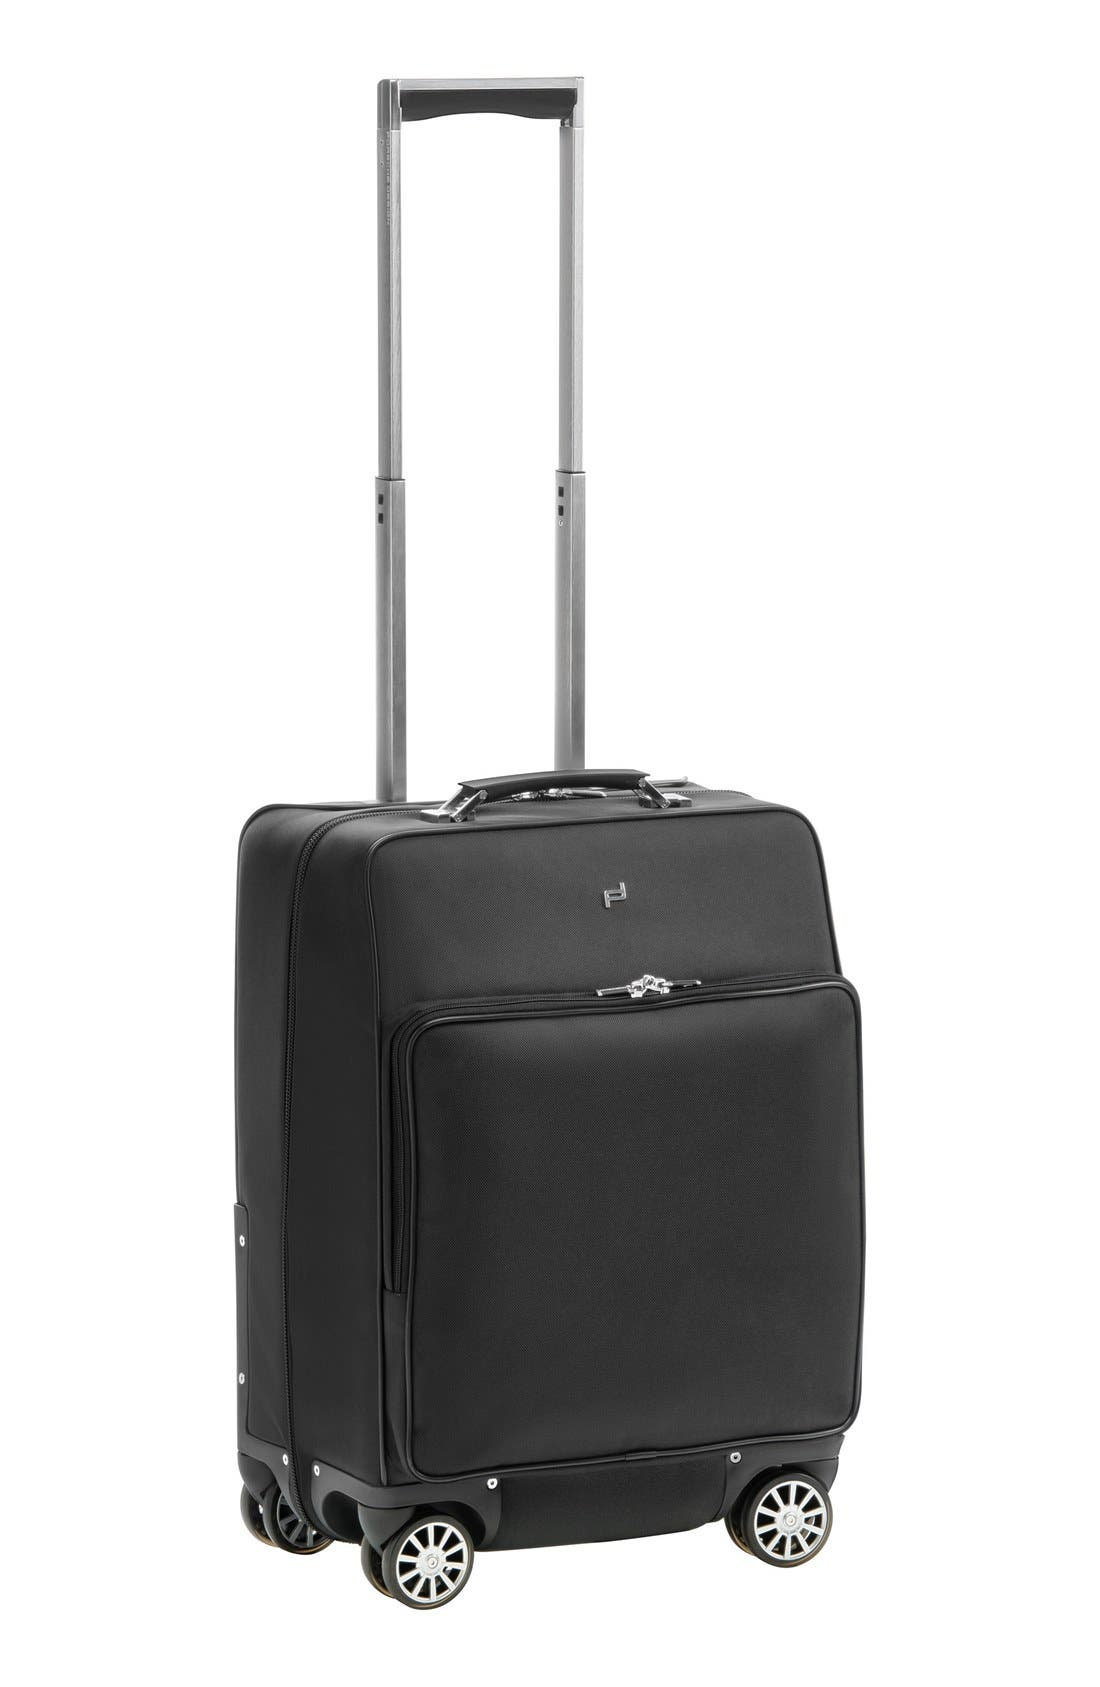 PORSCHE DESIGN Roadster 550 Wheeled Carry-On